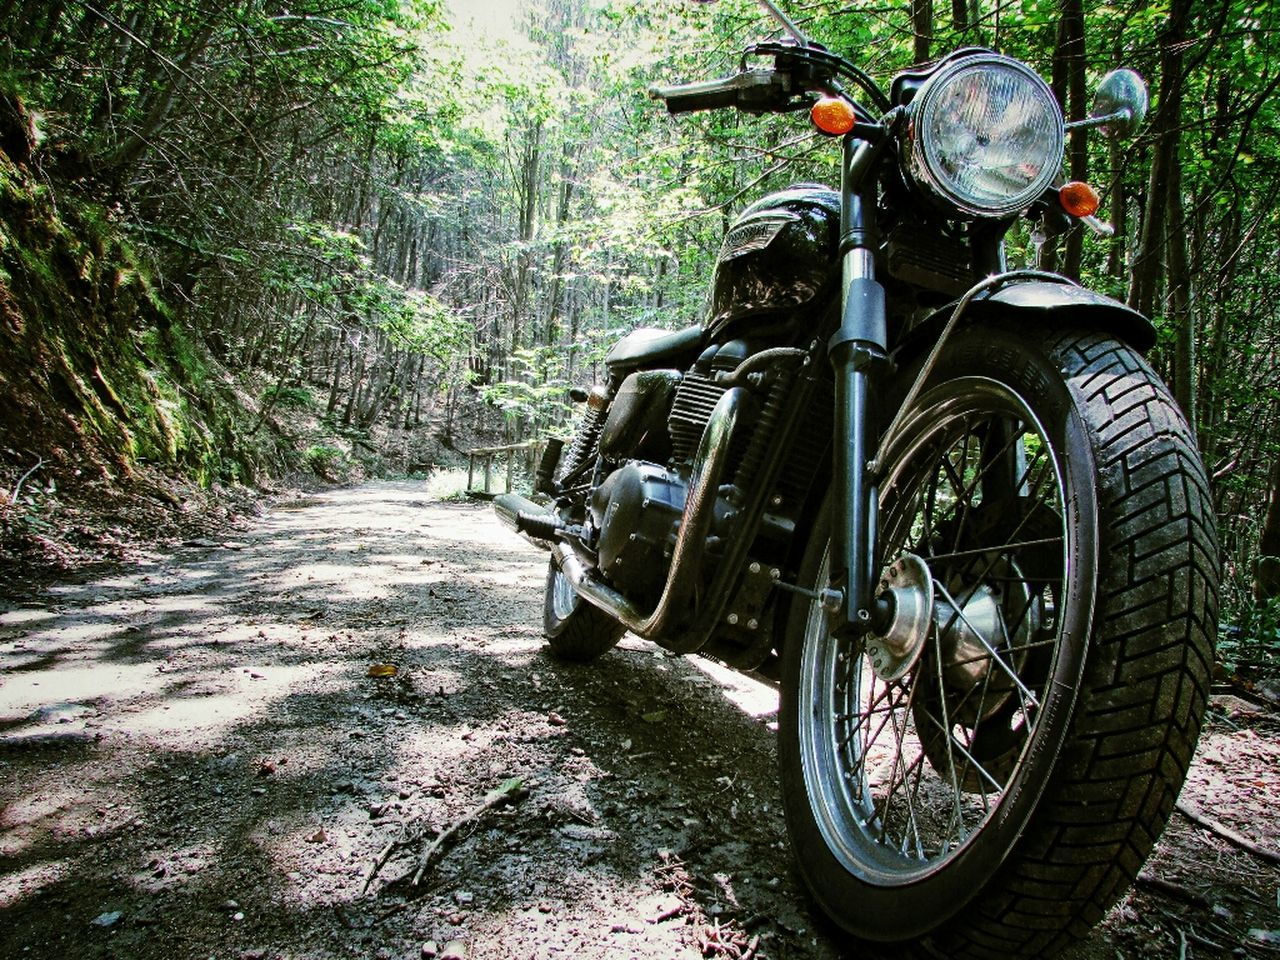 Beautiful stock photos of motorcycle, Day, Dirt, Dirt Road, Forest